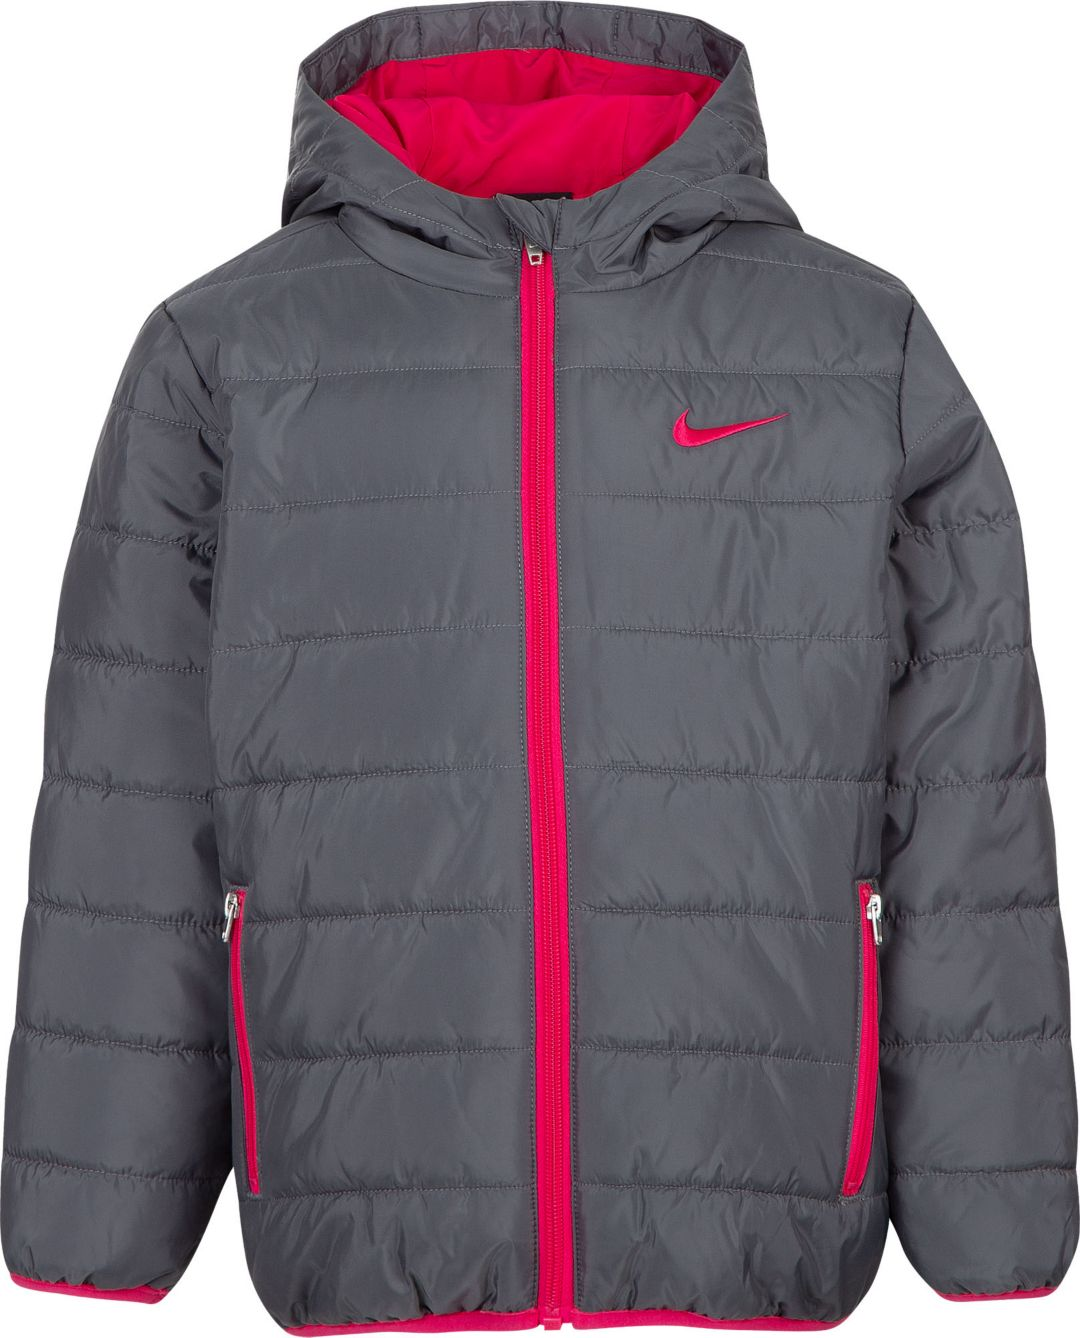 ecb50ffc41754 Nike Girls' Polyfill Quilted Insulated Puffer Jacket